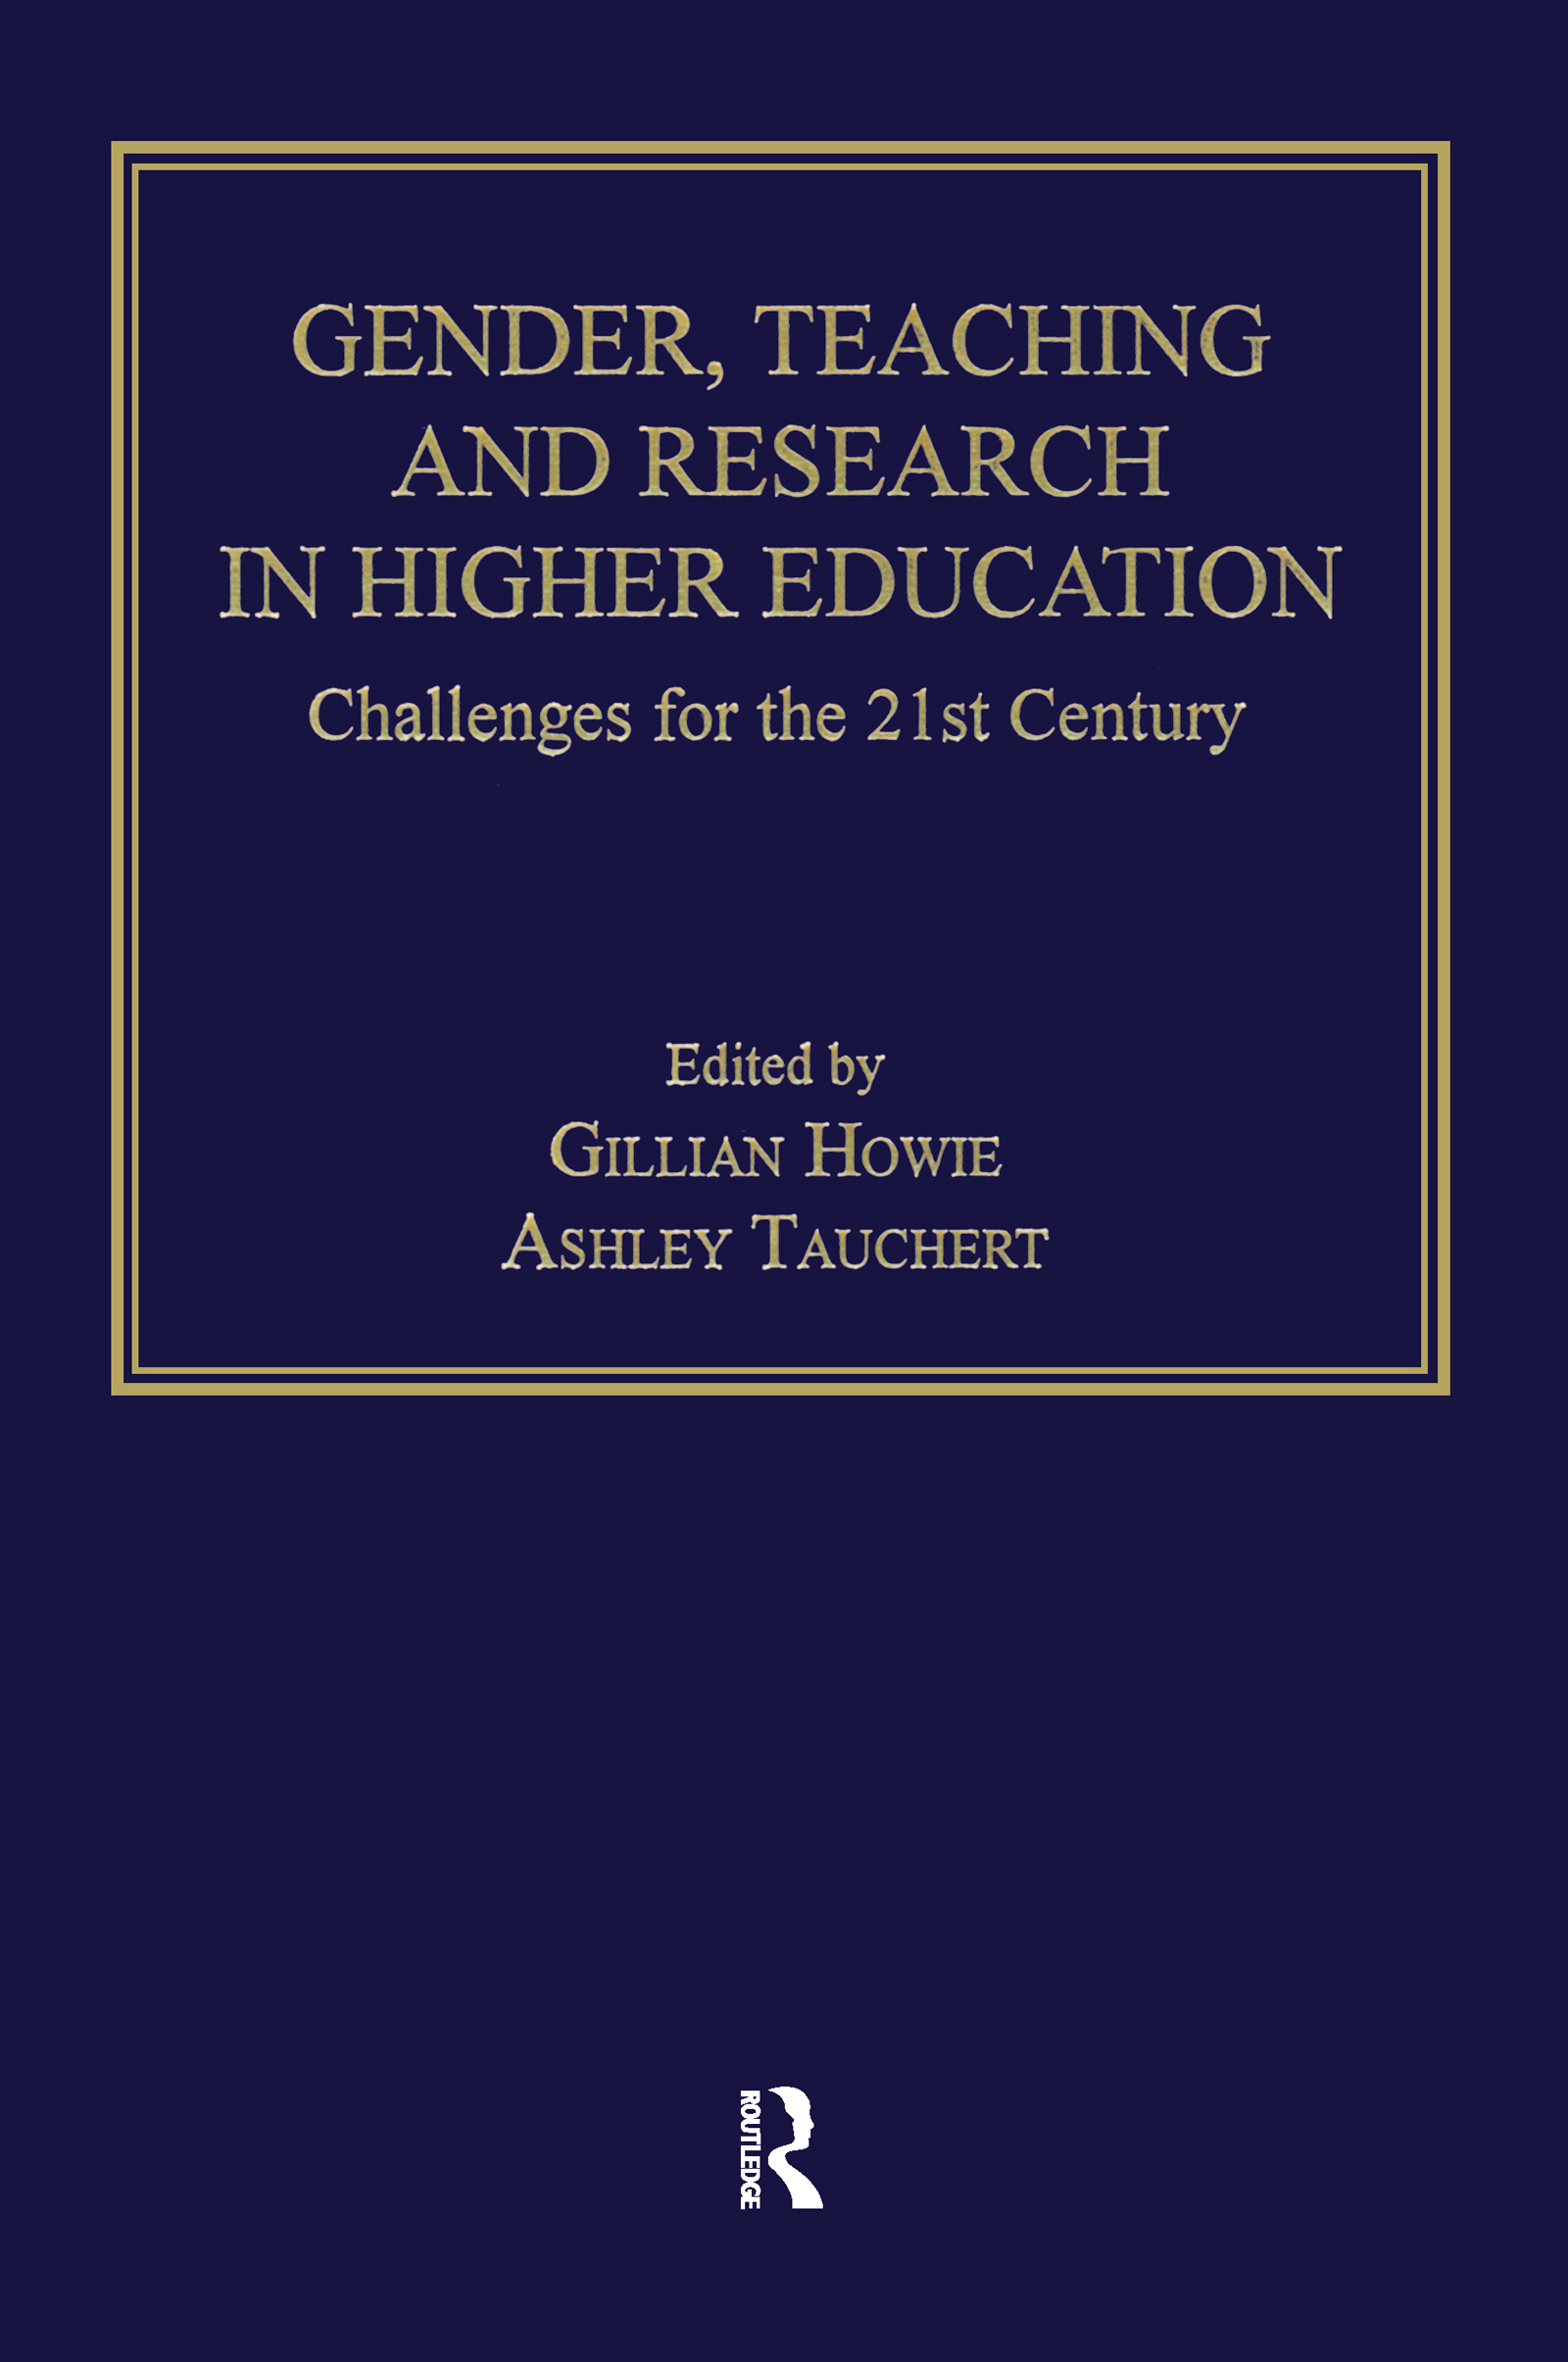 Gender, Teaching and Research in Higher Education